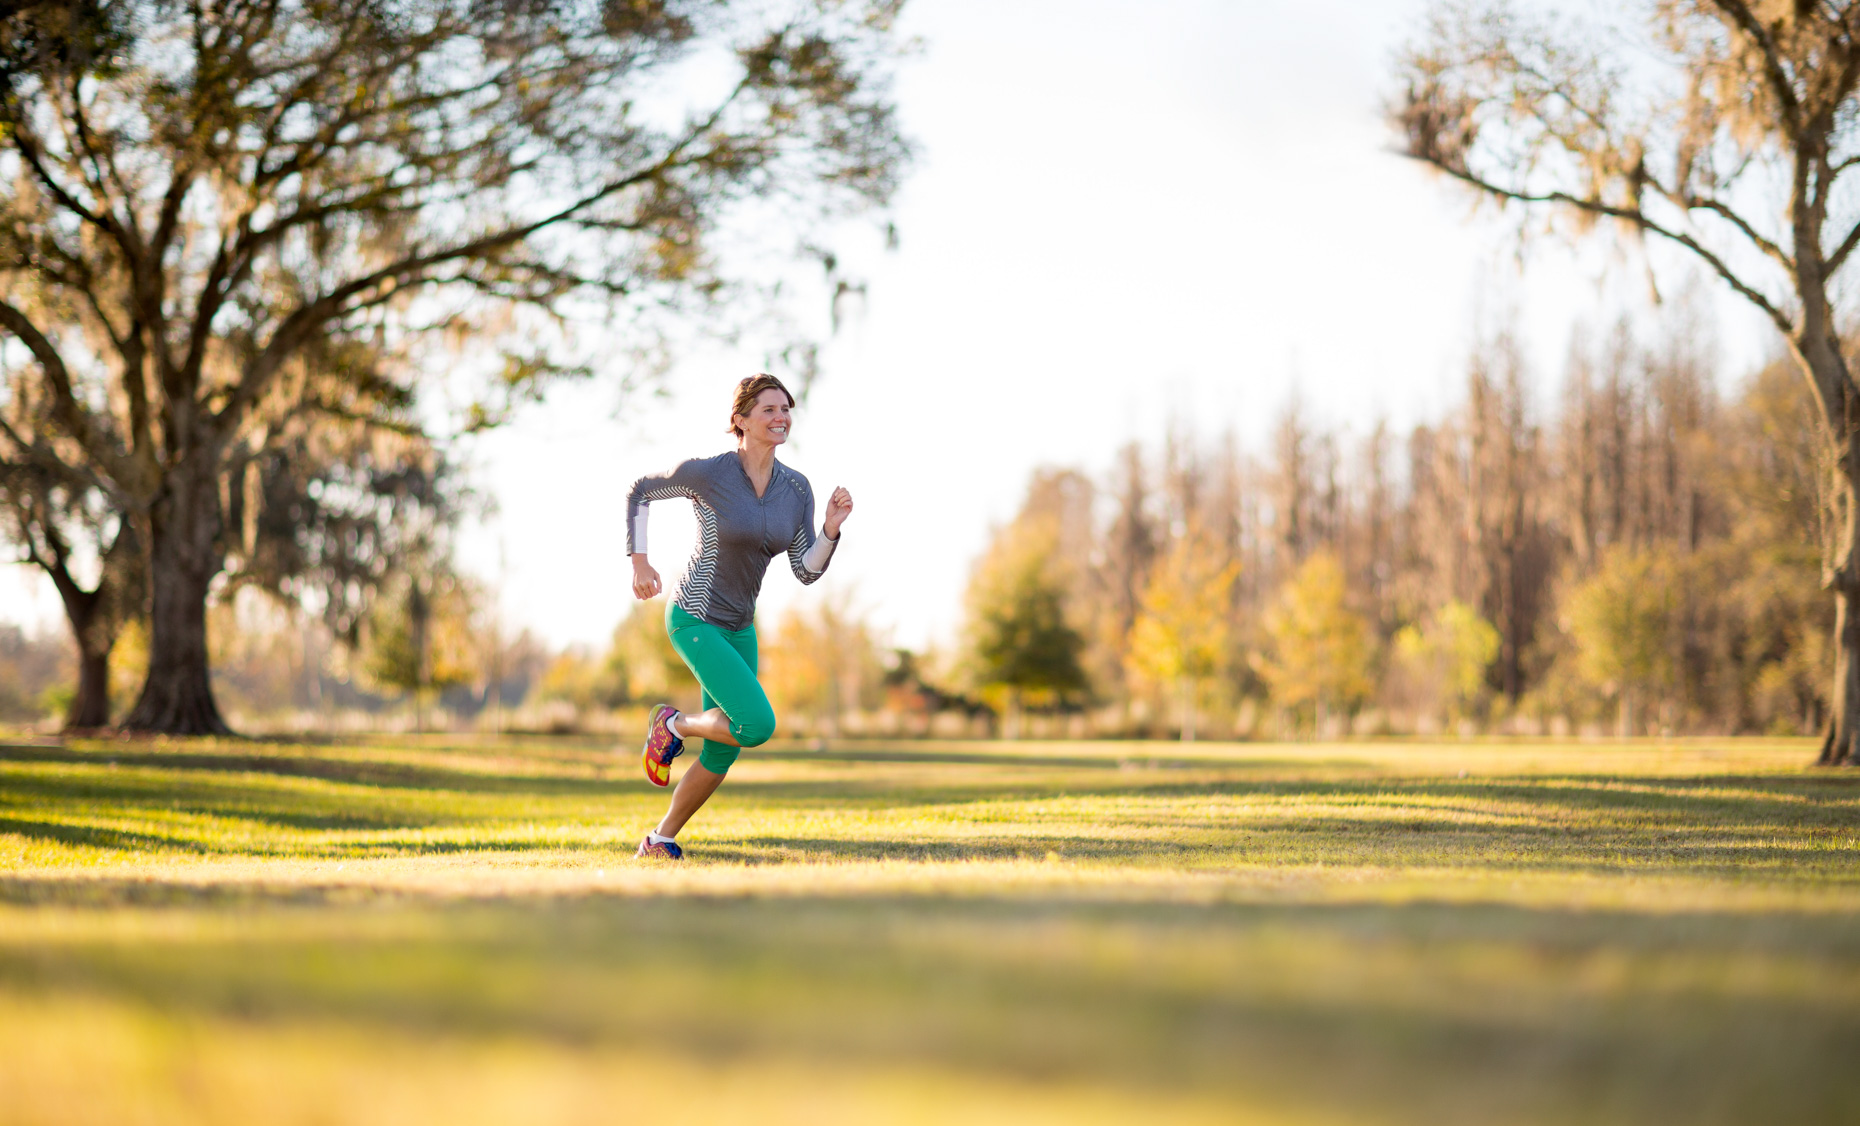 woman running outside in a park, shot by Steven P. Widoff